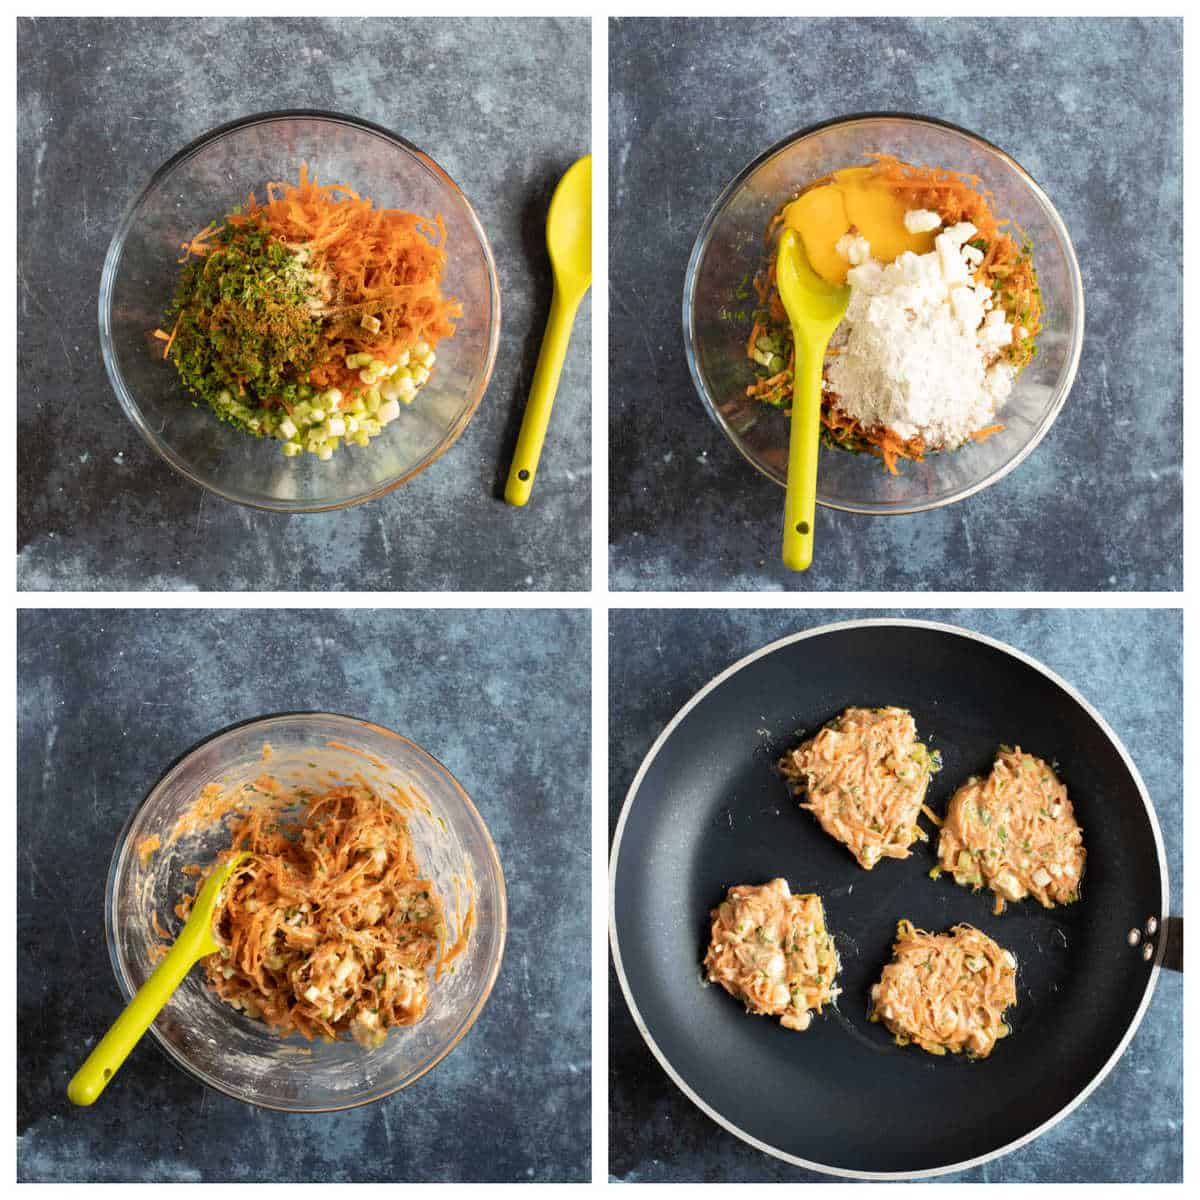 Step by step photo instructions for making carrot fritters.